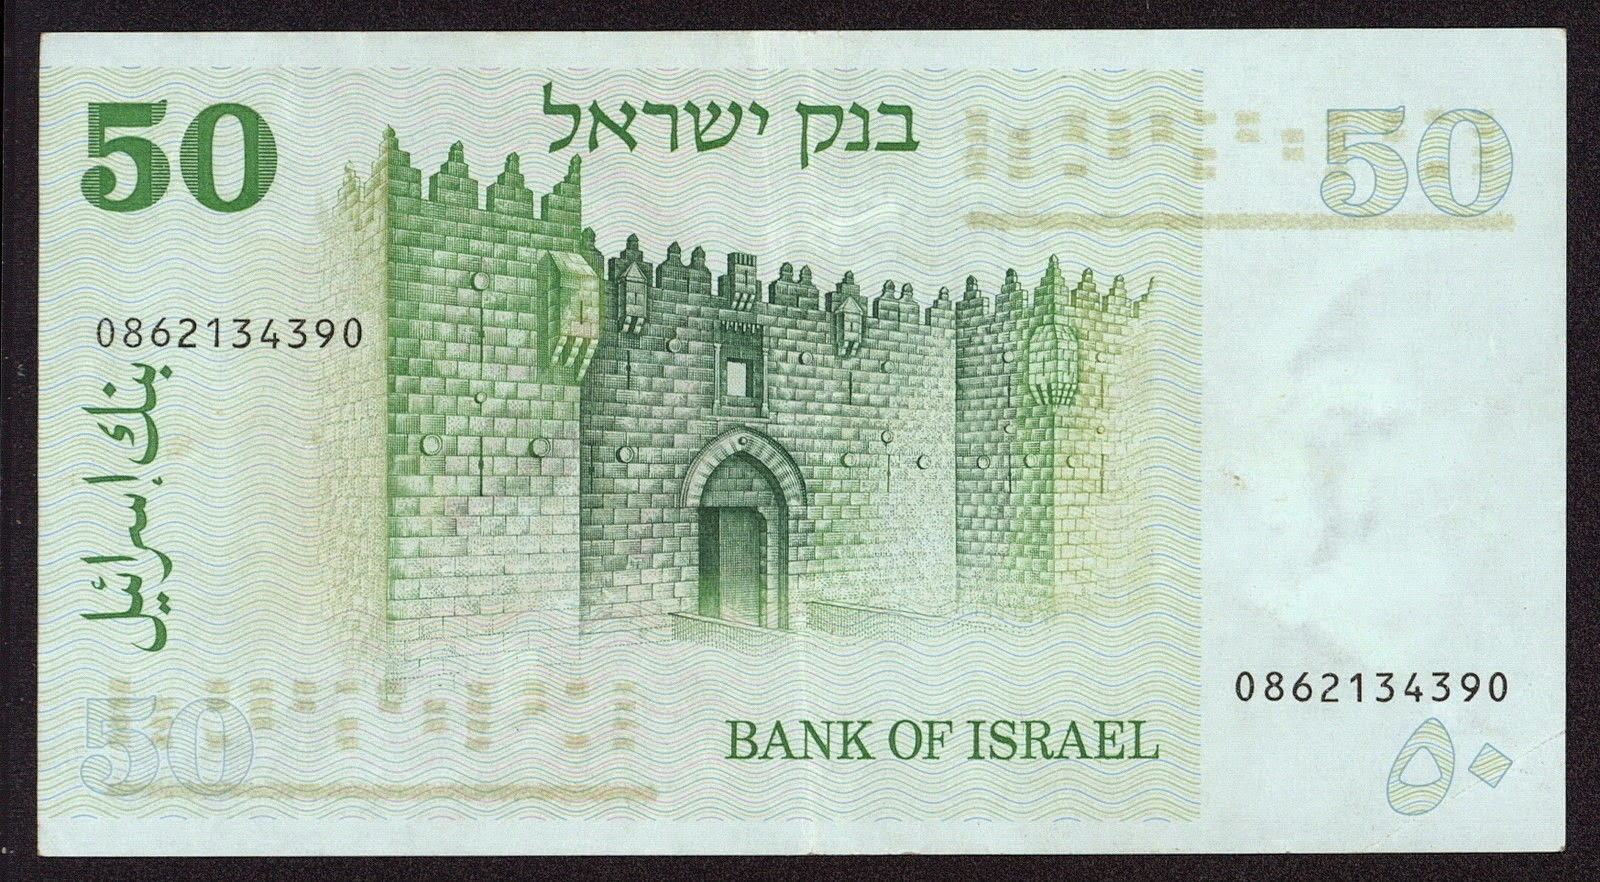 Israel Banknotes 50 Lirot Note 1973 Damascus gate in the Old City of Jerusalem